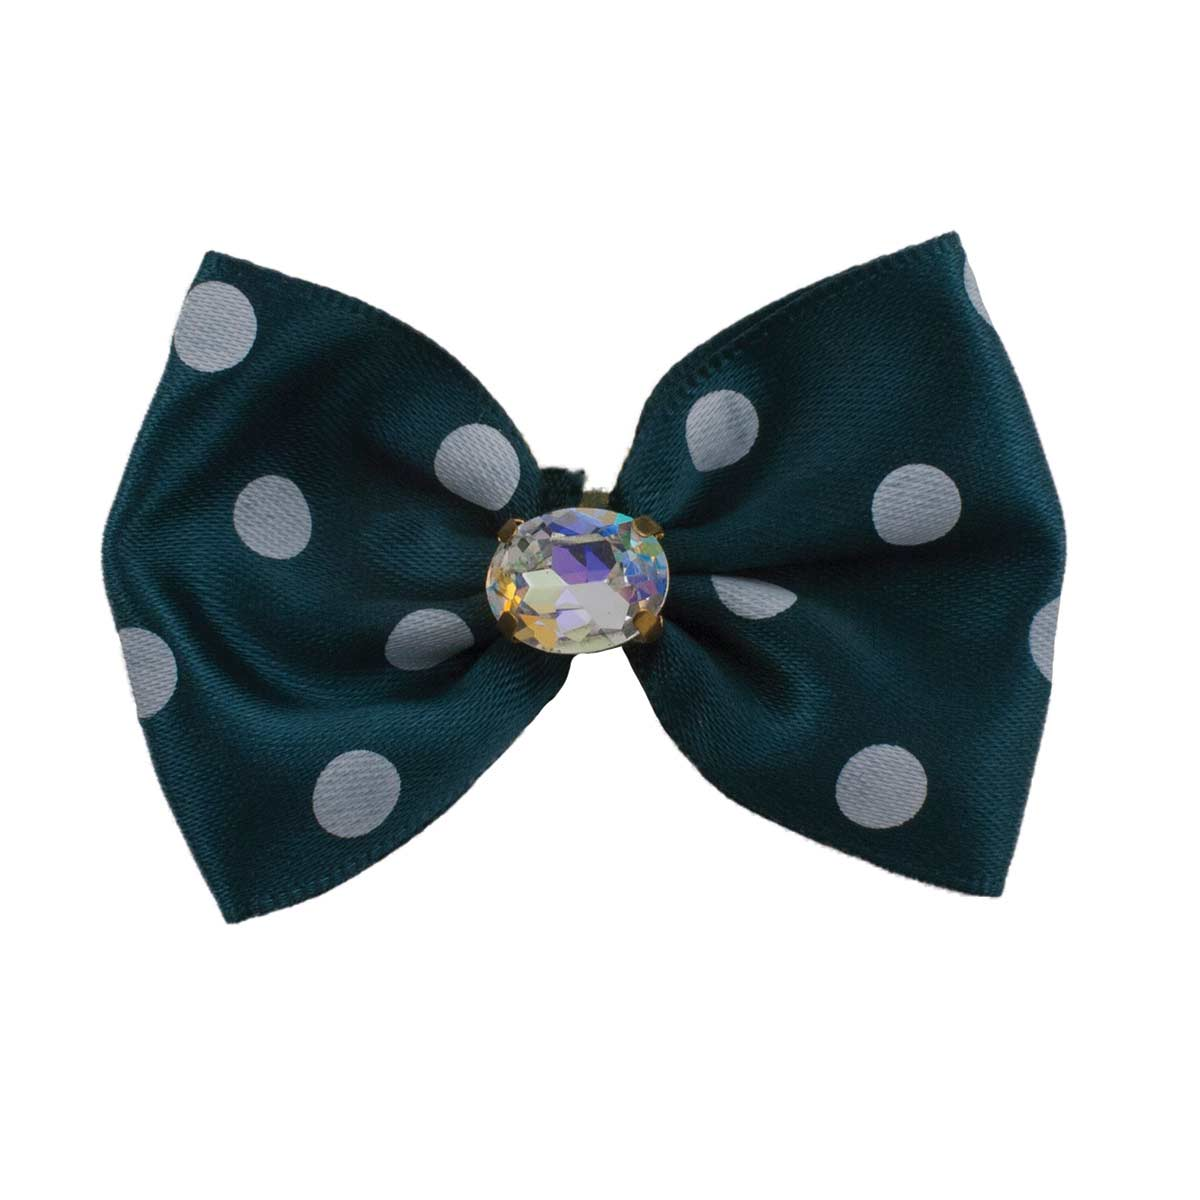 Fancy Finishes Assorted Dot Print Satin Bows for Dogs with Rhinestone - 24 Bows